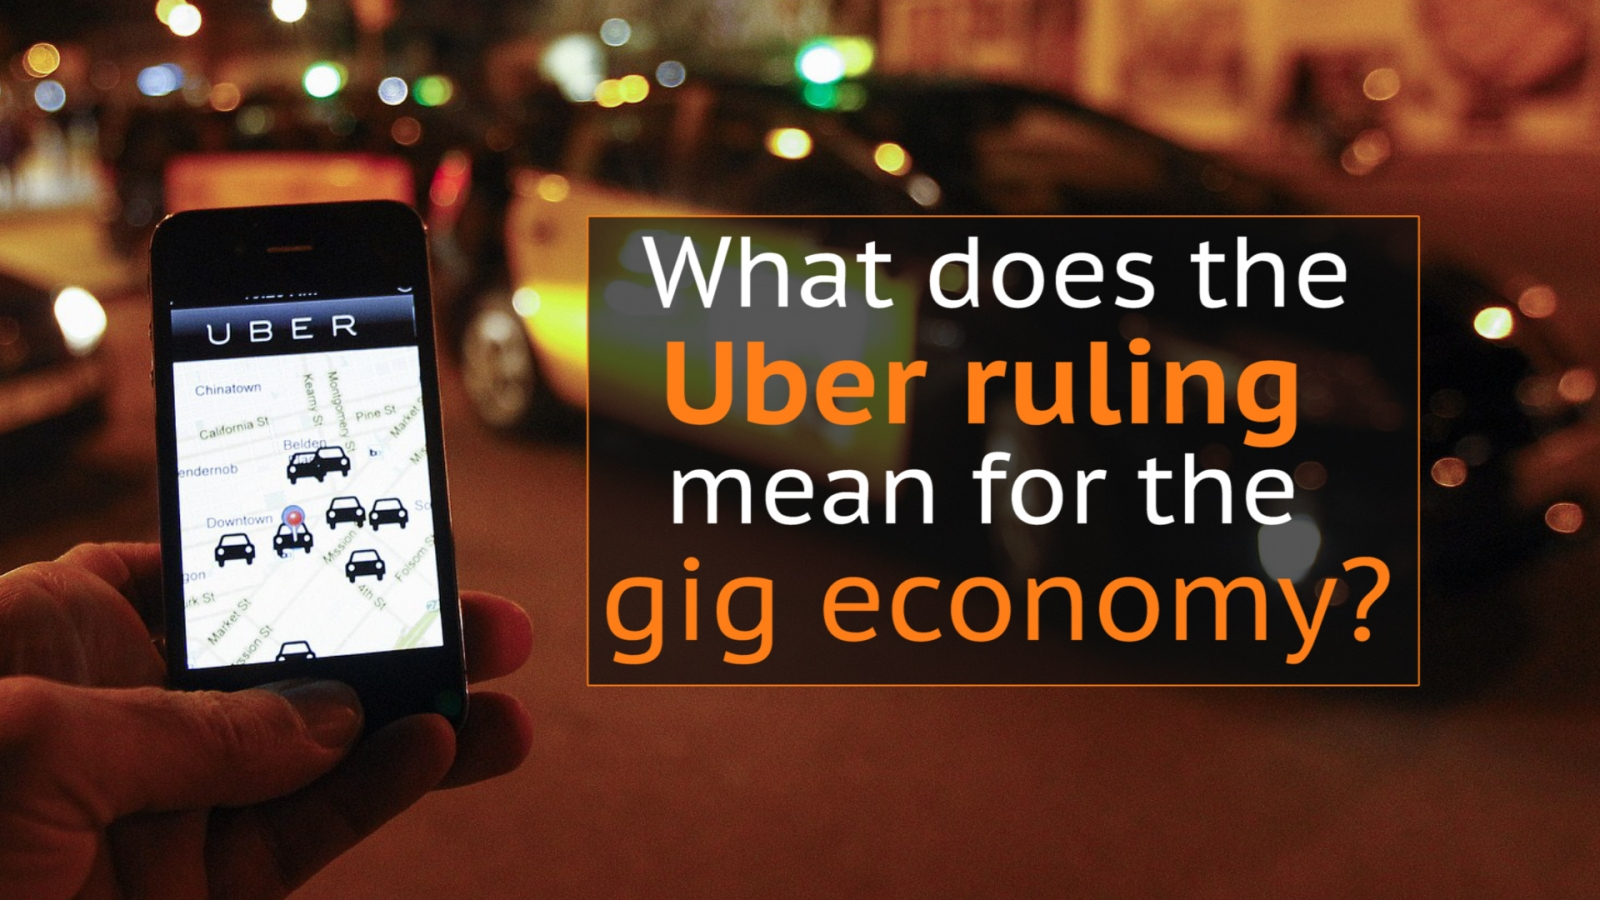 What does the Uber tribunal ruling mean for the gig economy?